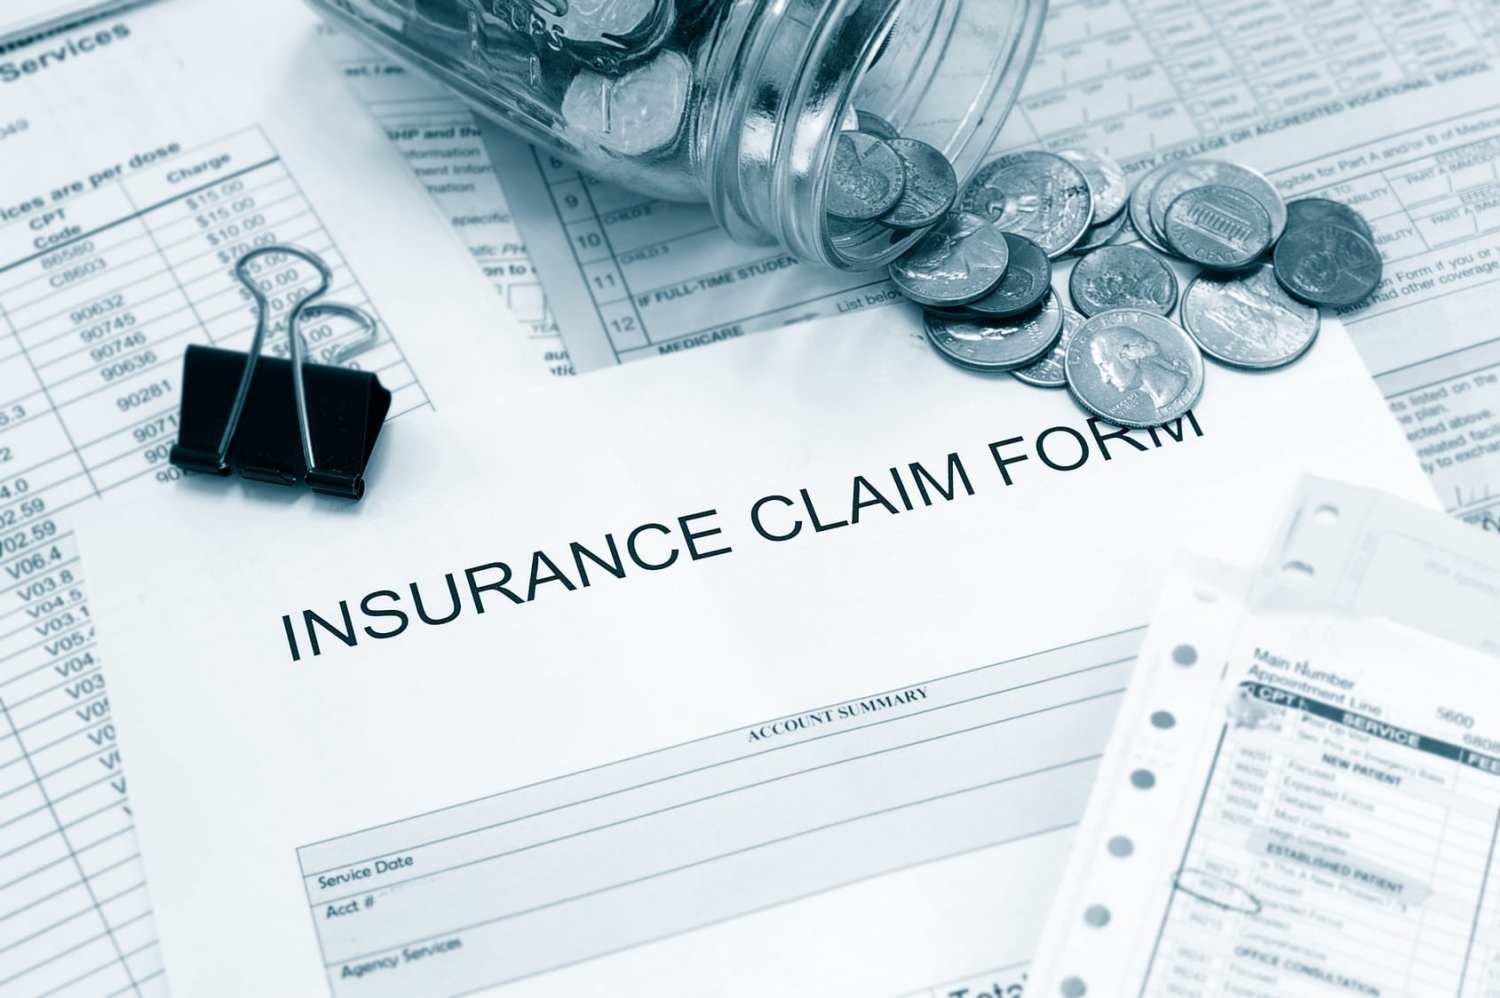 Patient medical bills and claim form with coin jar